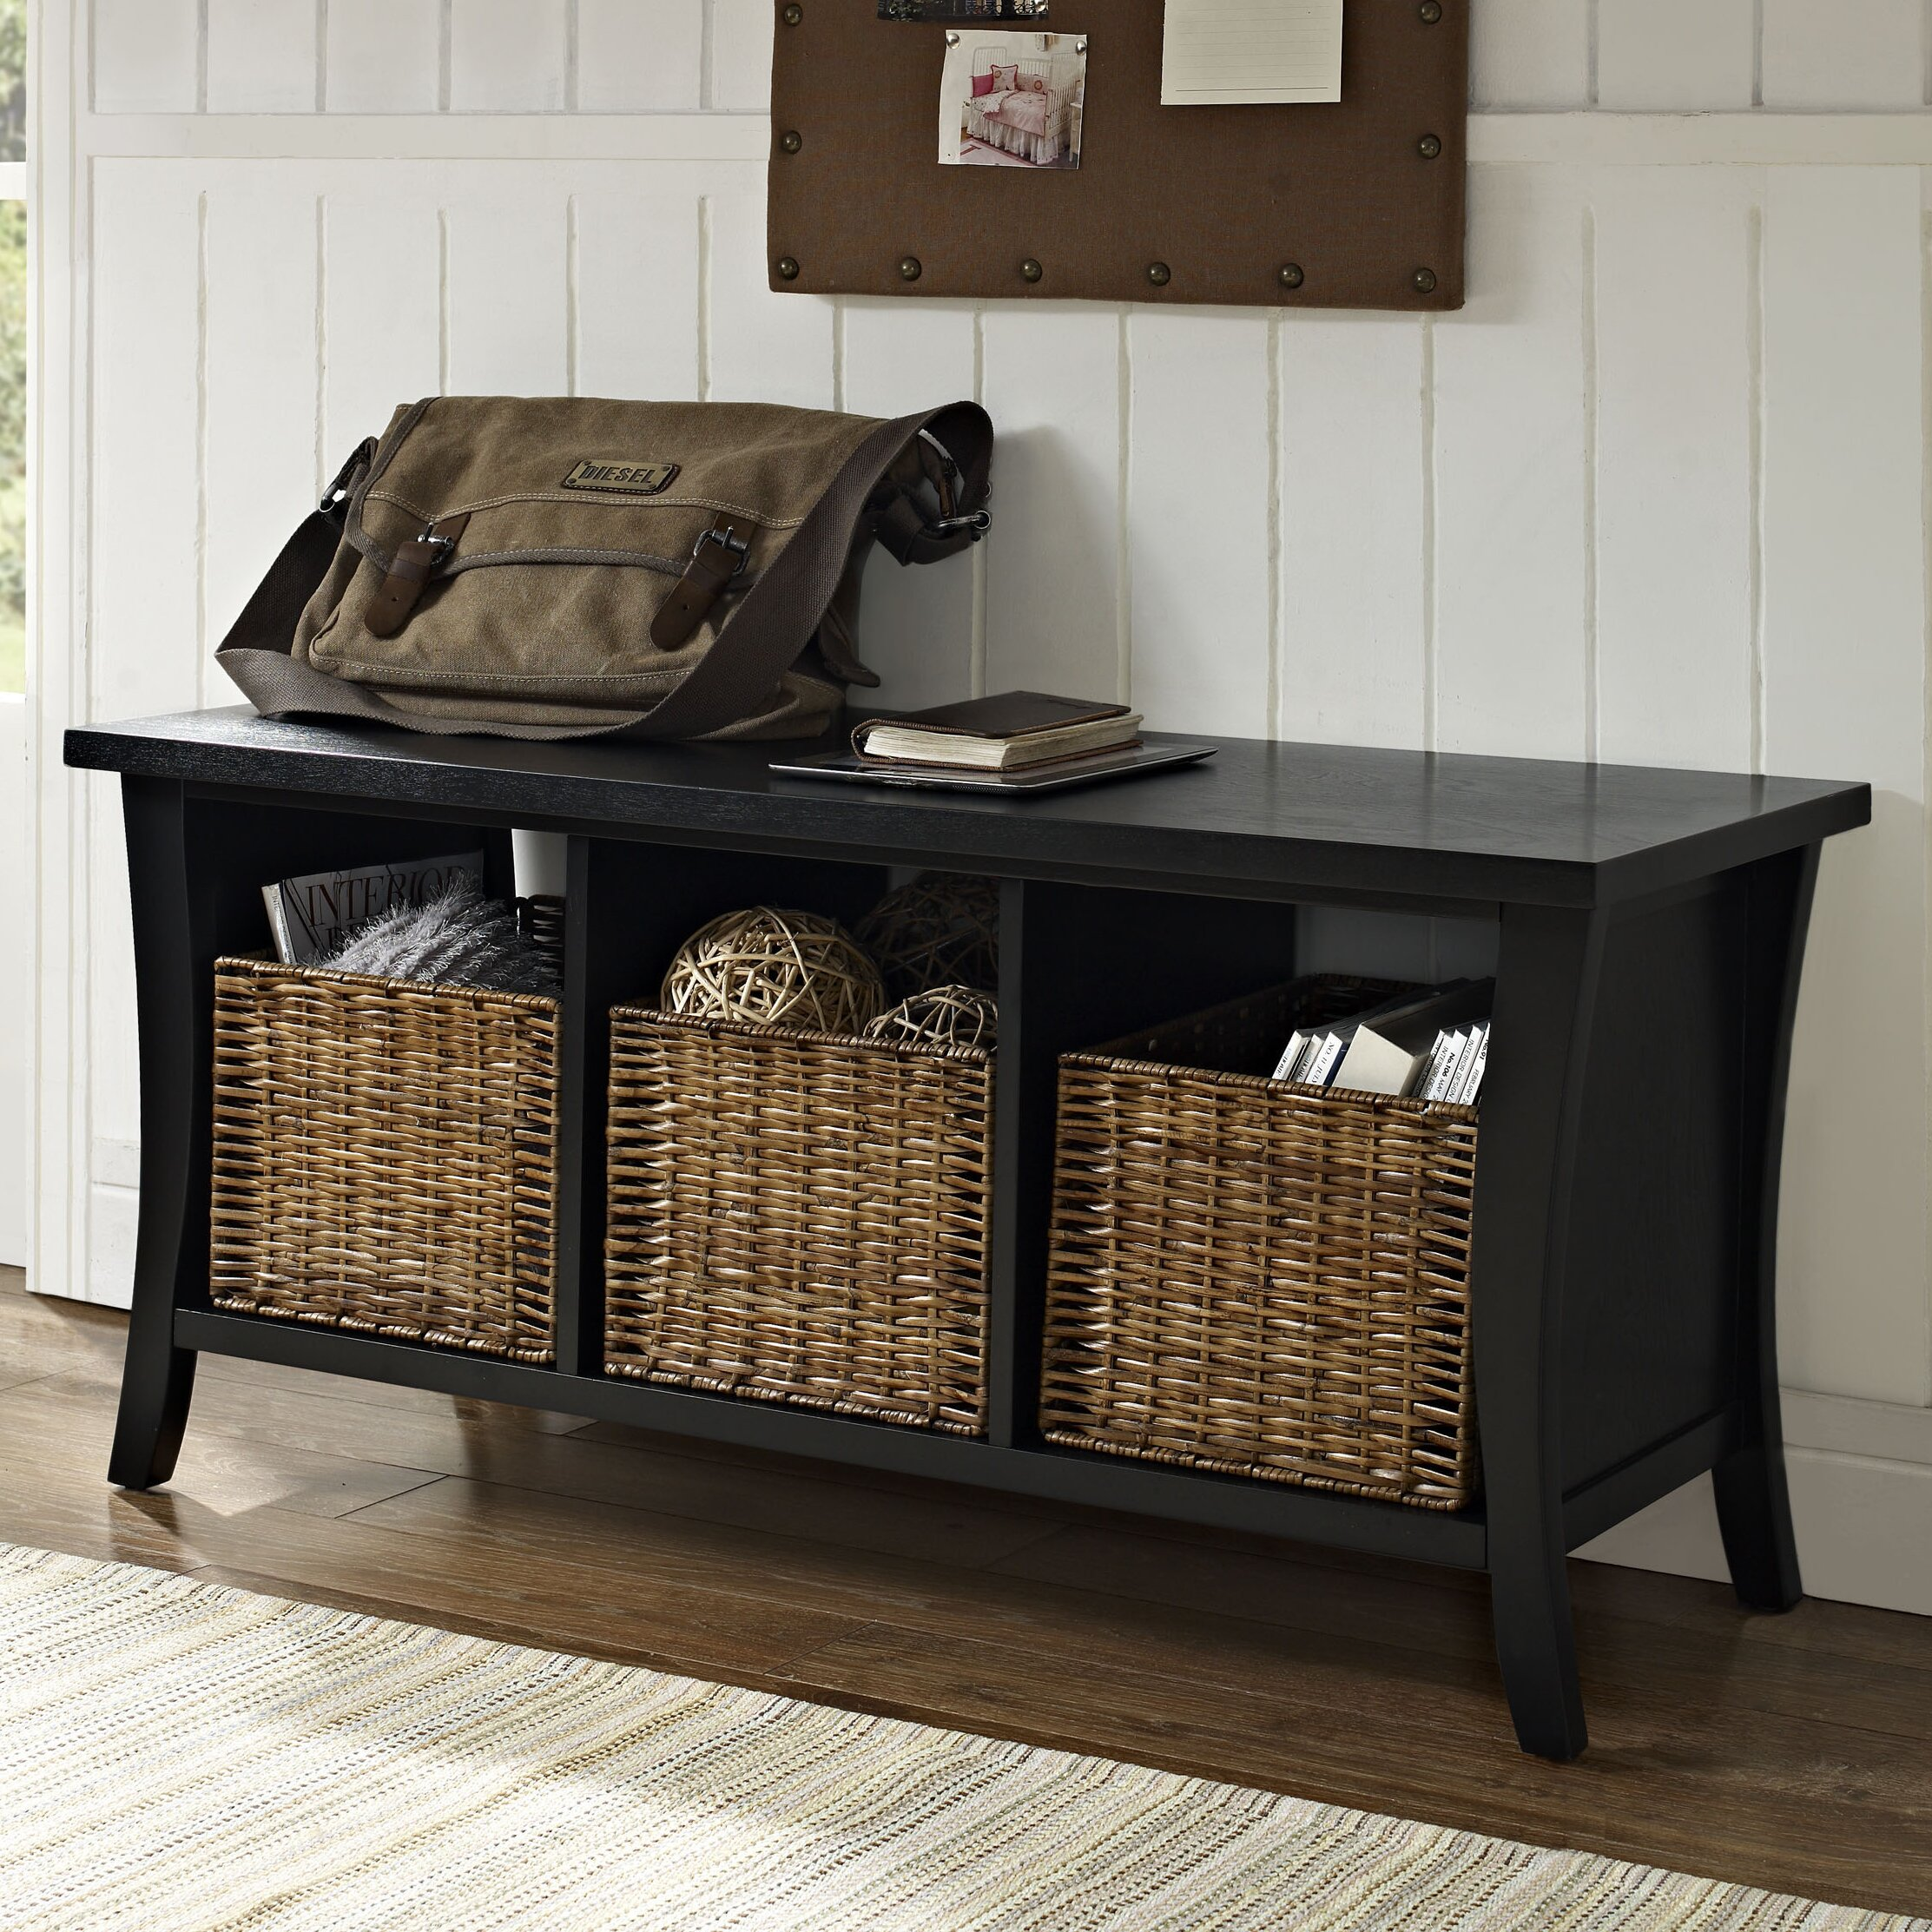 Beachcrest Home Lewisetta Entryway Storage Bench Reviews